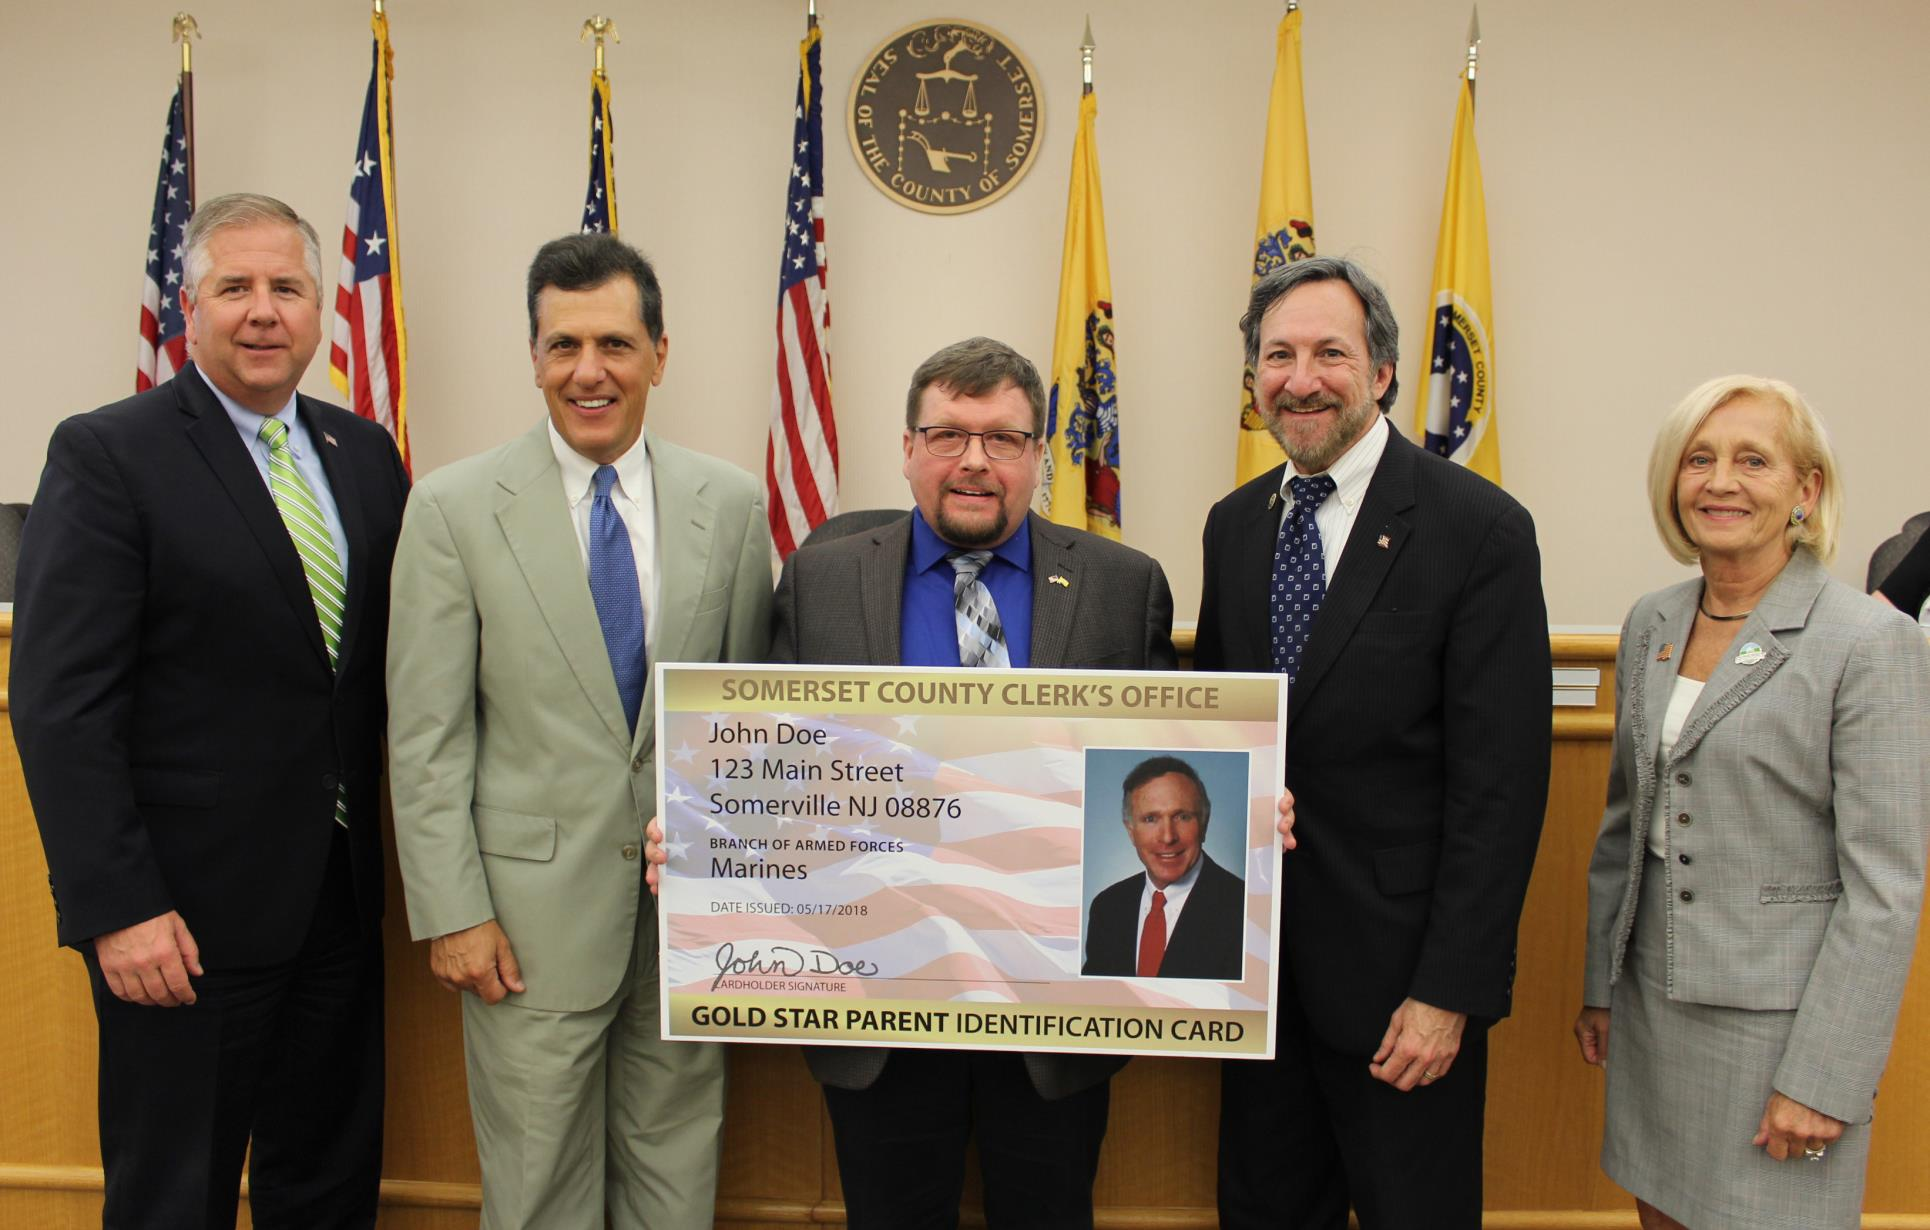 County Clerk & Freeholders Display Gold Star Parent ID Card